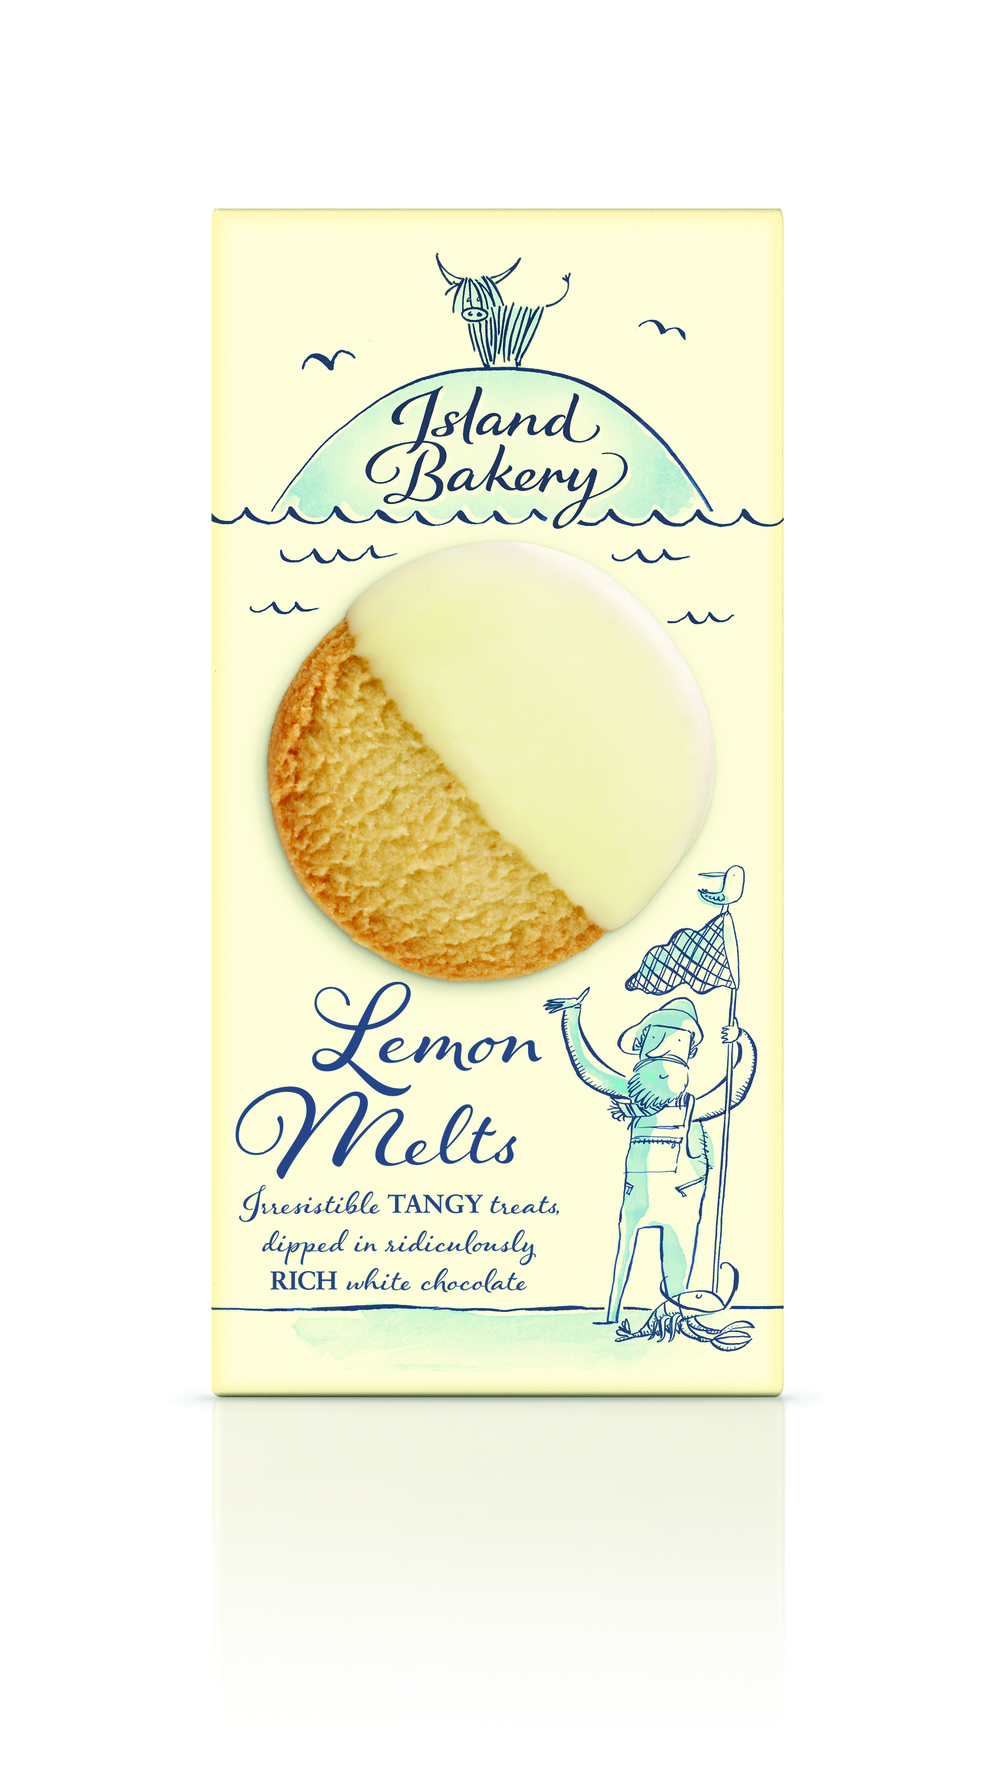 Lemon Melts Carton2.jpg